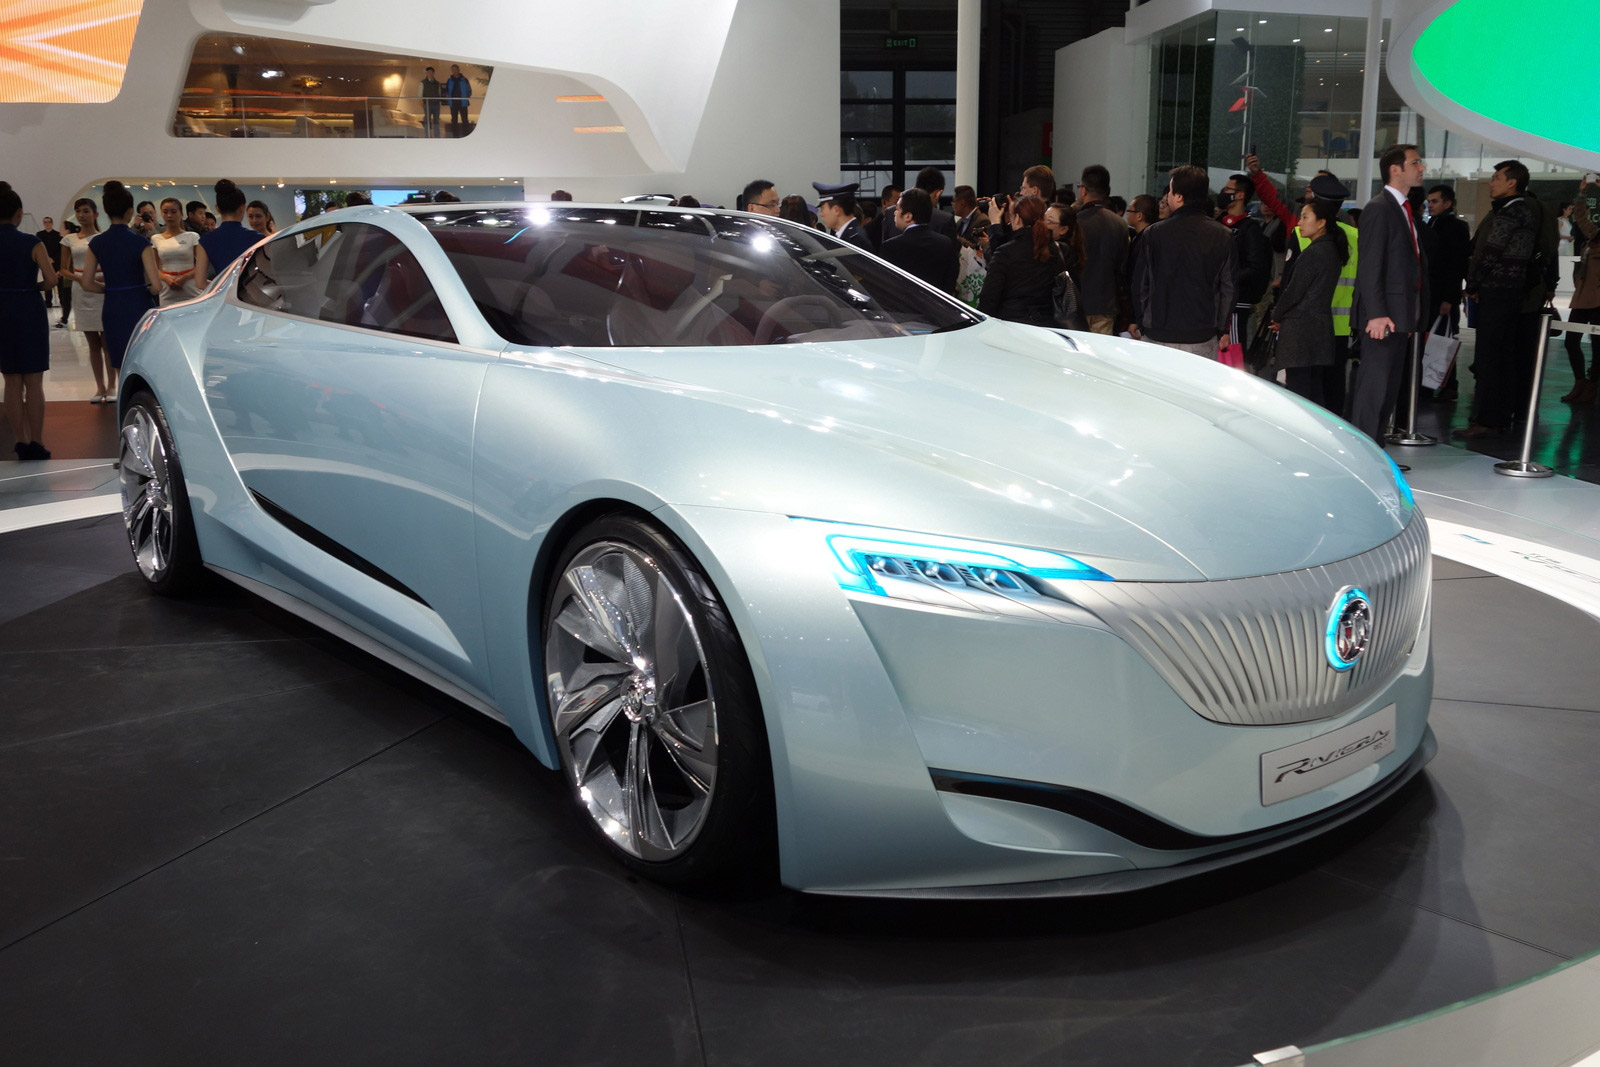 Buick Riviera Concept Isn't Your Father's: Shanghai Auto Show New 2021 Buick Riviera Review, Concept, Images